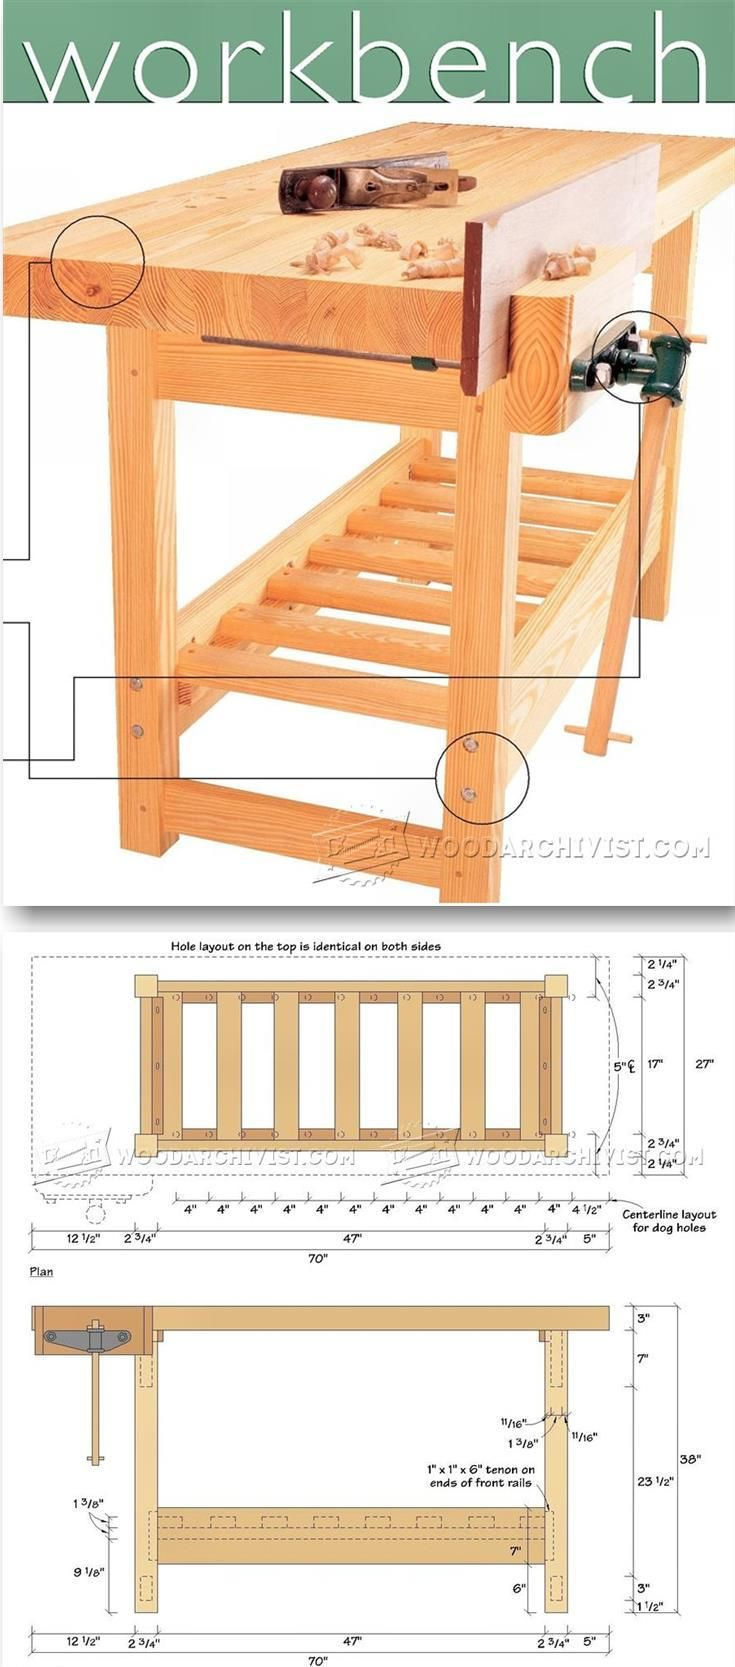 Wood Workbench Plan - Workshop Solutions Plans, Tips and Tricks ...